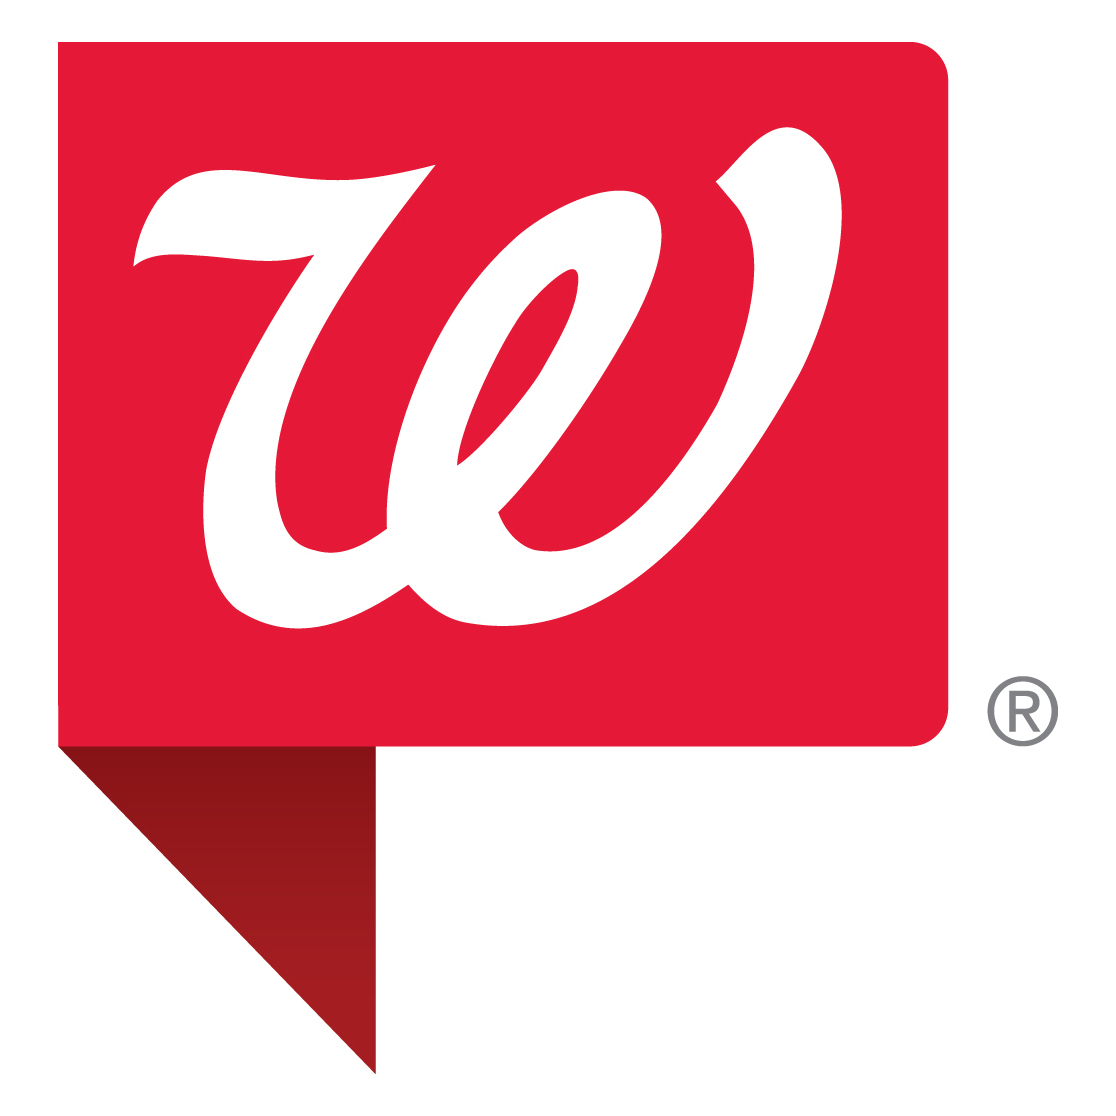 Walgreens - Saint Joseph, MO - Pharmacist